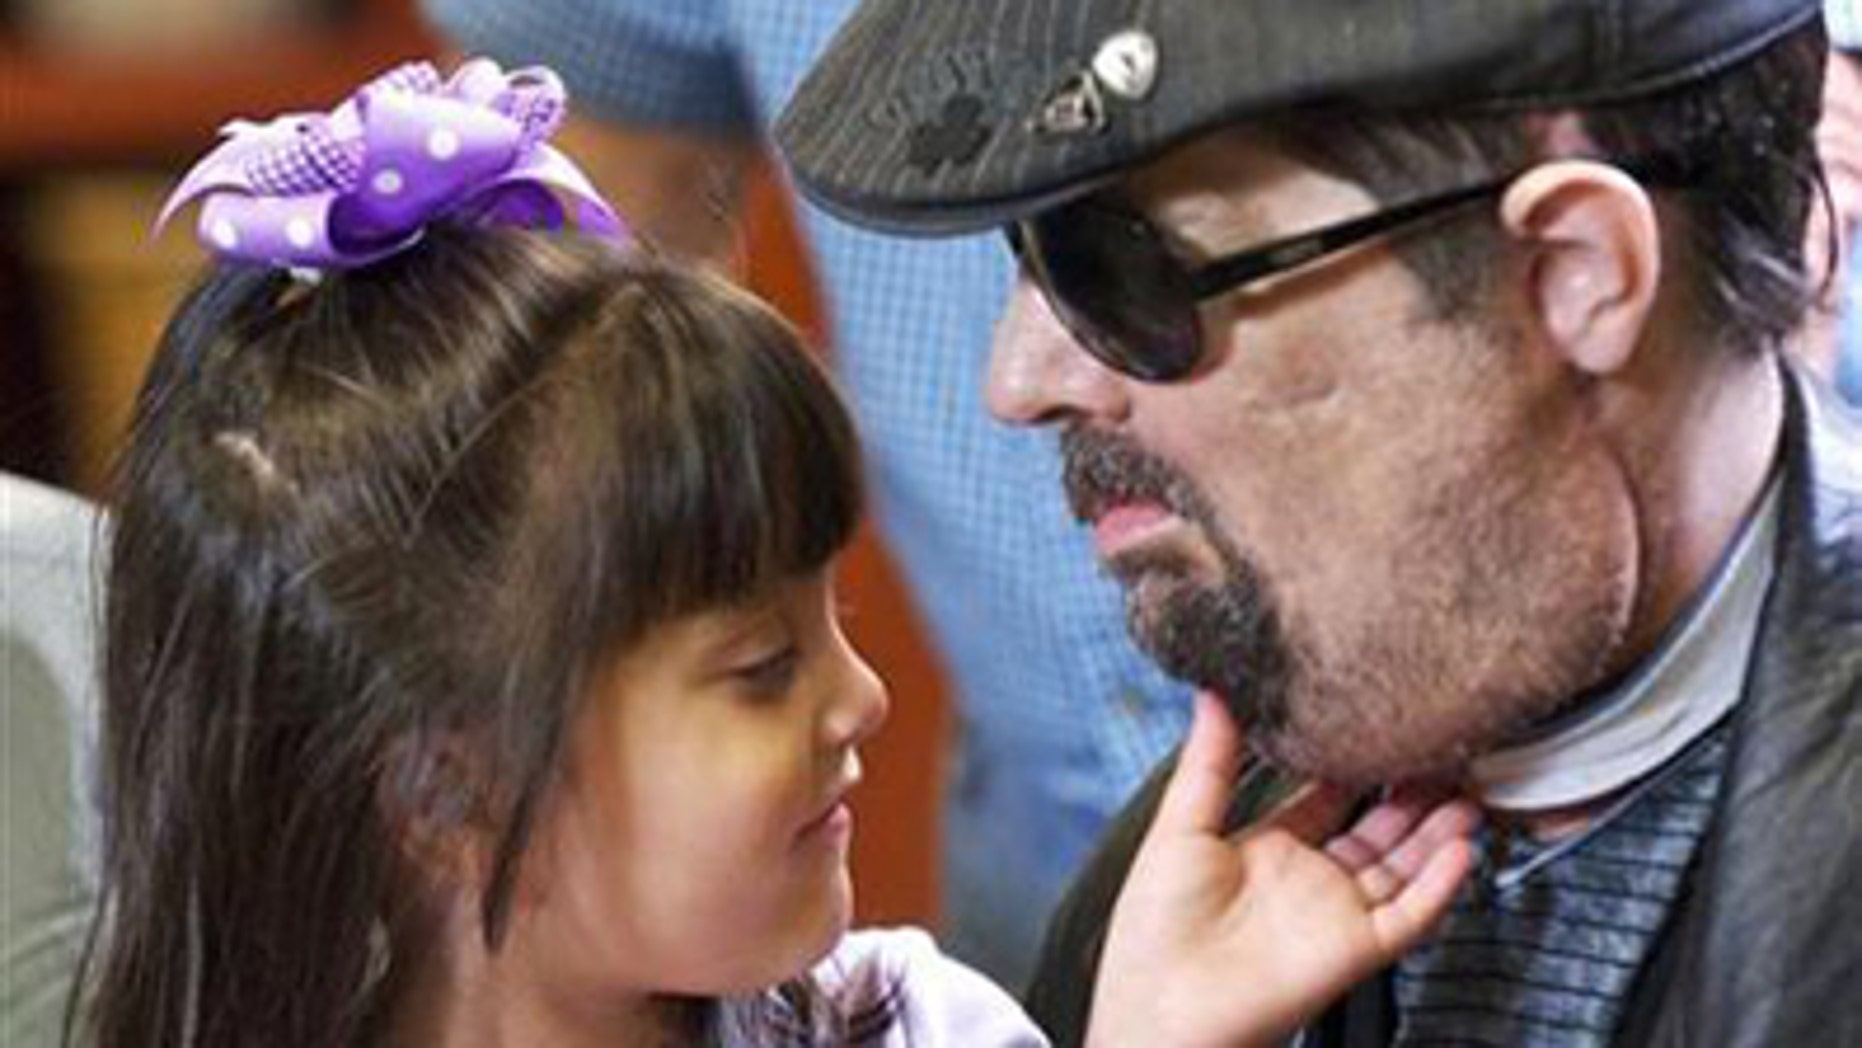 Full face transplant patient Dallas Wiens is seen with his 4-year old daughter Scarlette in this undated handout image.